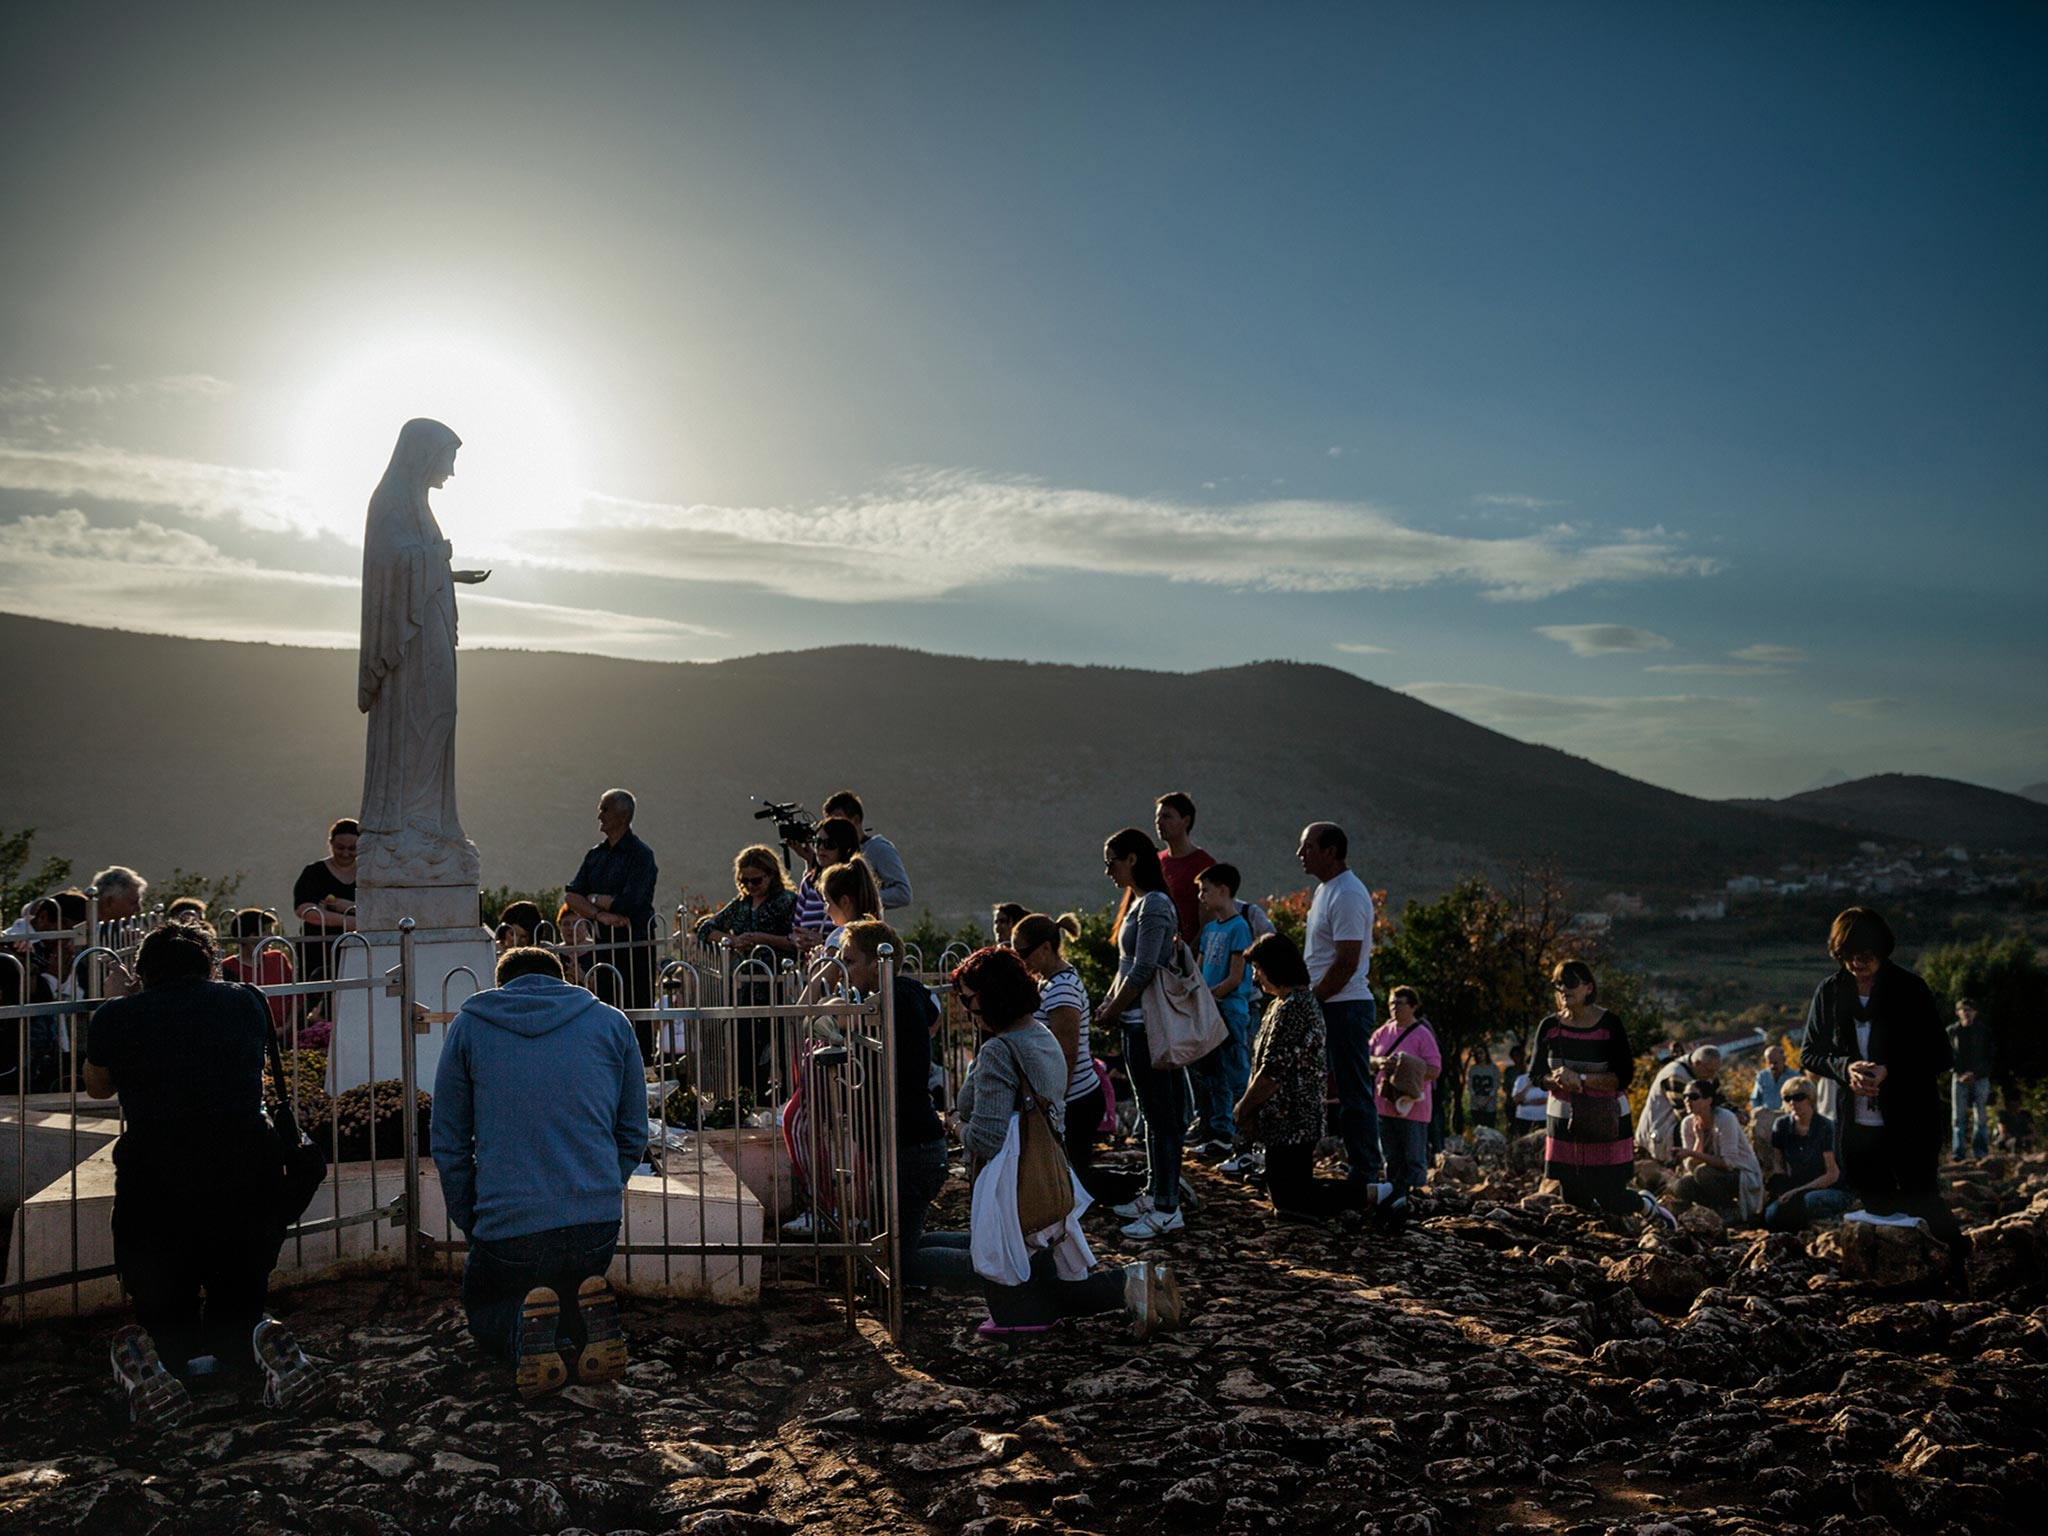 As the sun sets in Medjugorje, Bosnia and Herzegovina—a hot spot for Virgin Mary sightings—devotees of diverse faiths and nationalities gather to pray.